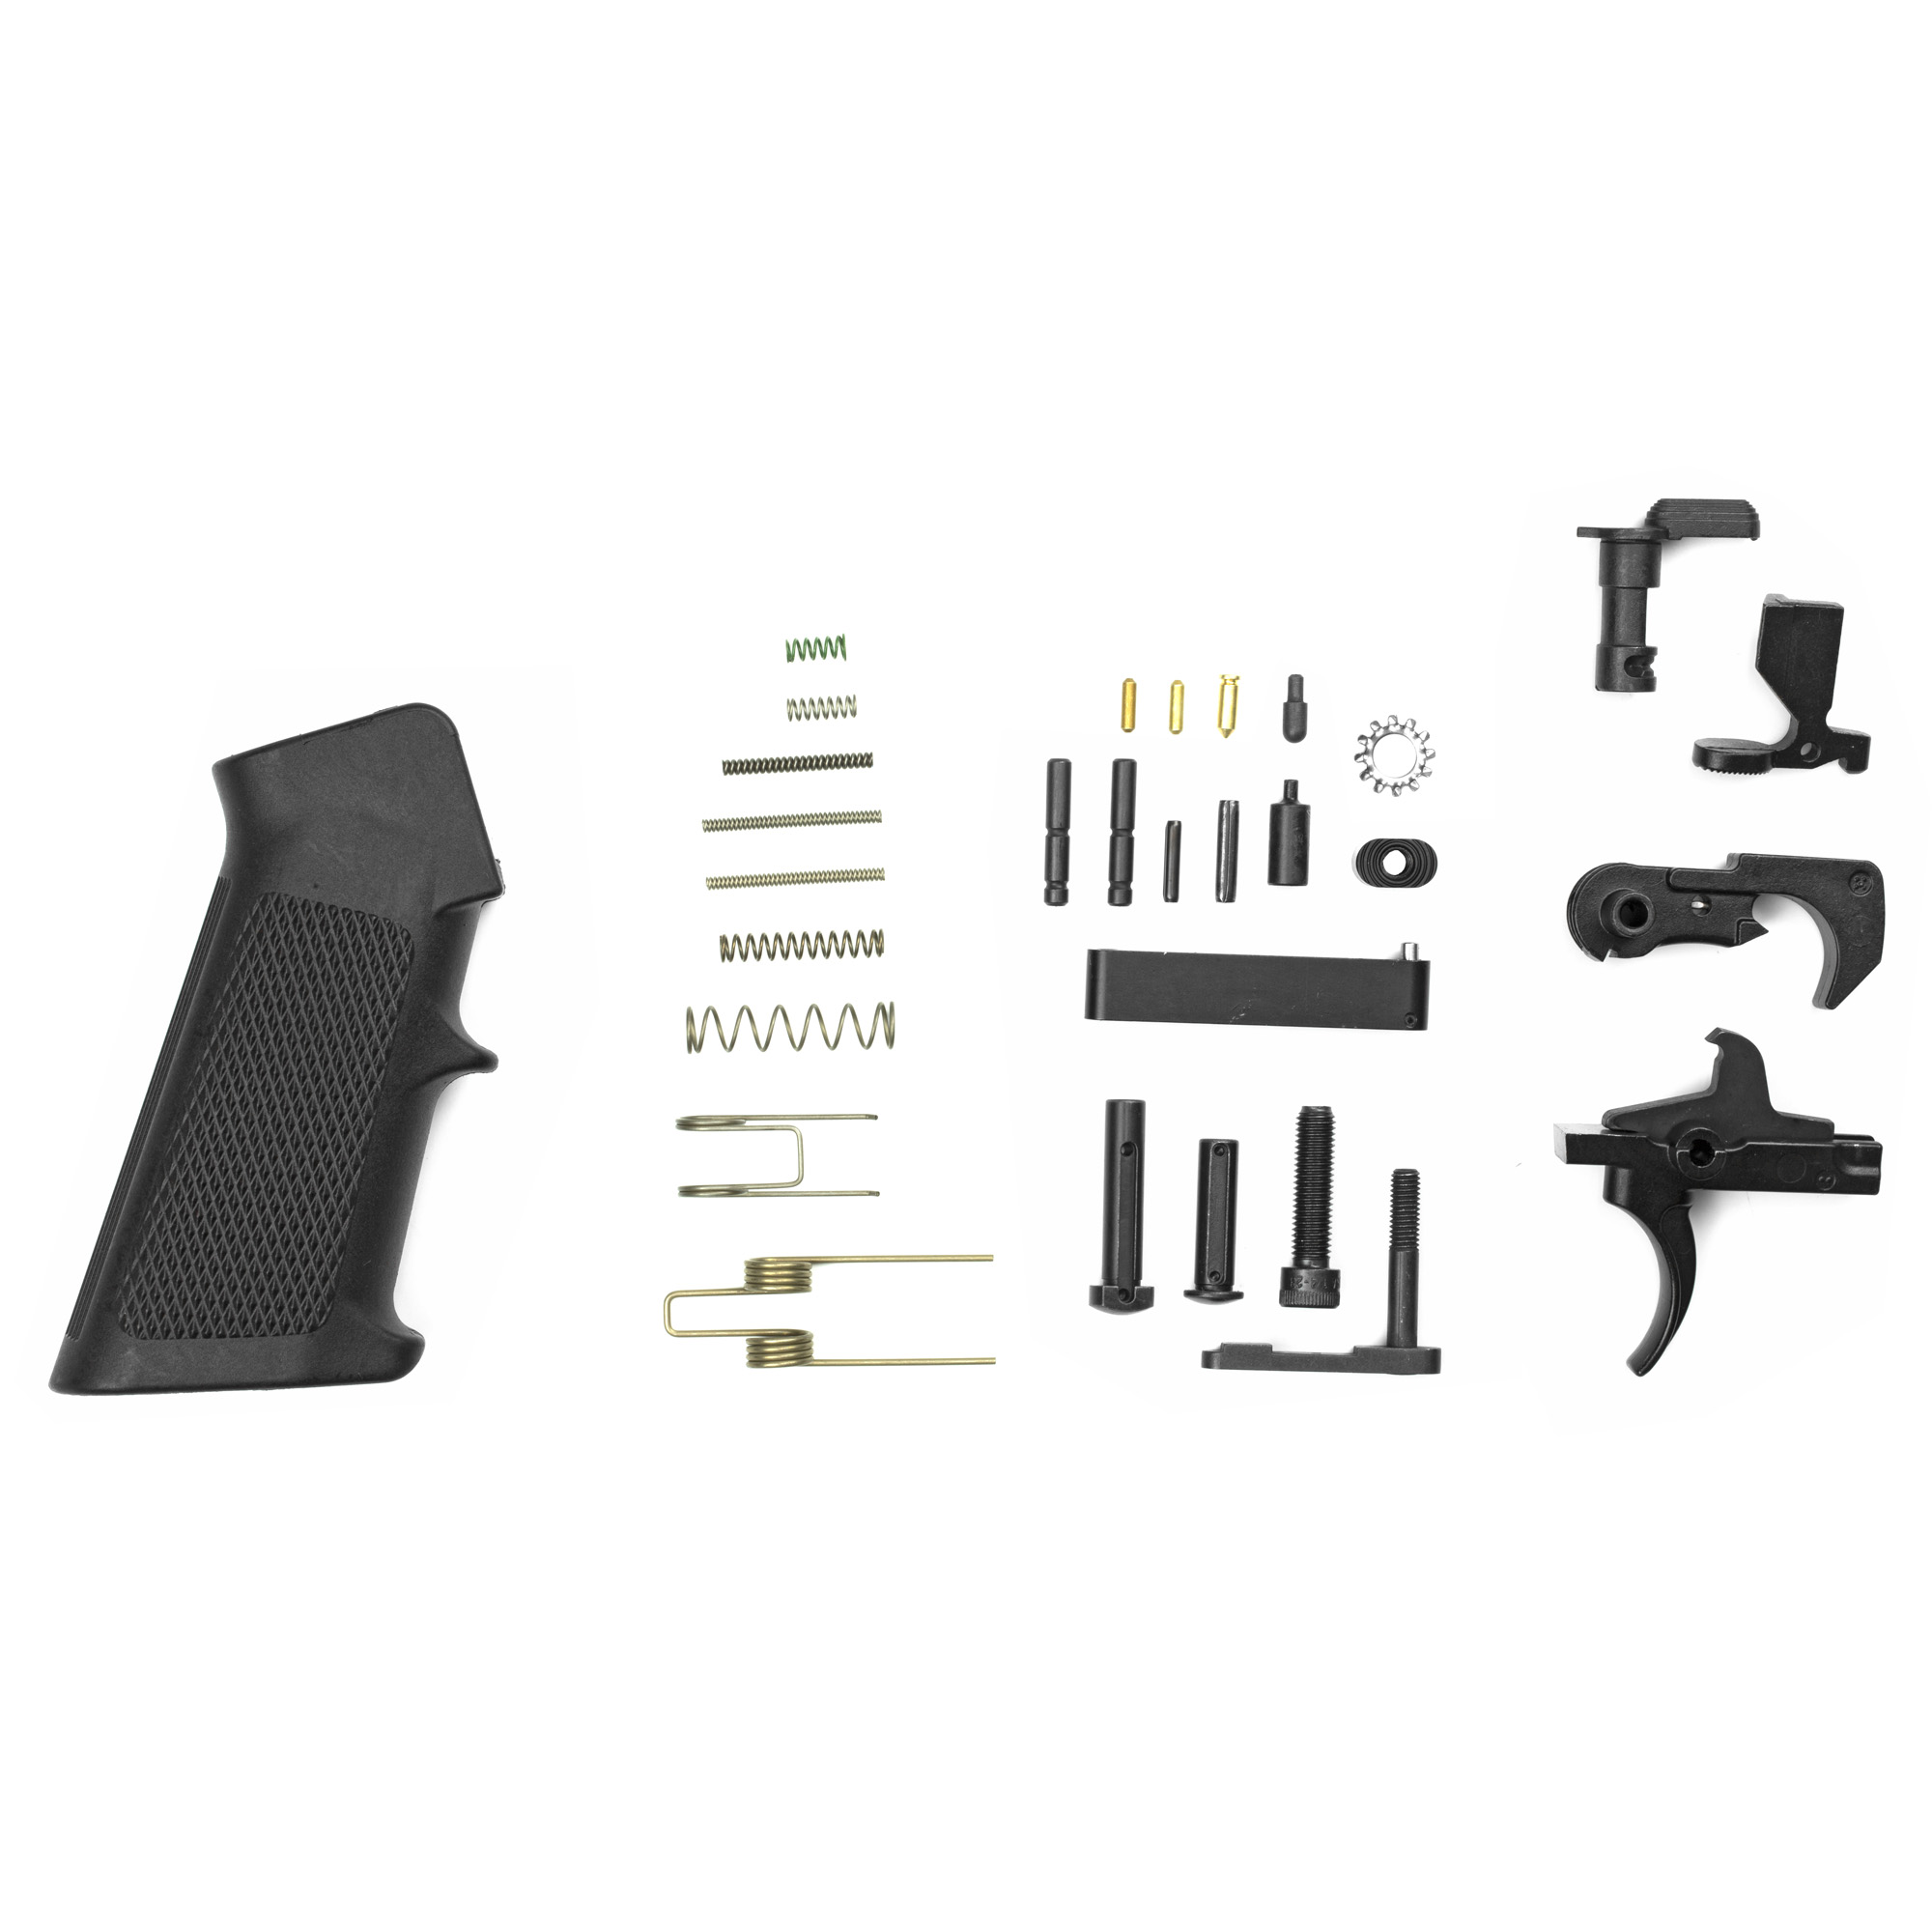 AR15 Complete Lower Parts Kit. Perfect for your next custom build.